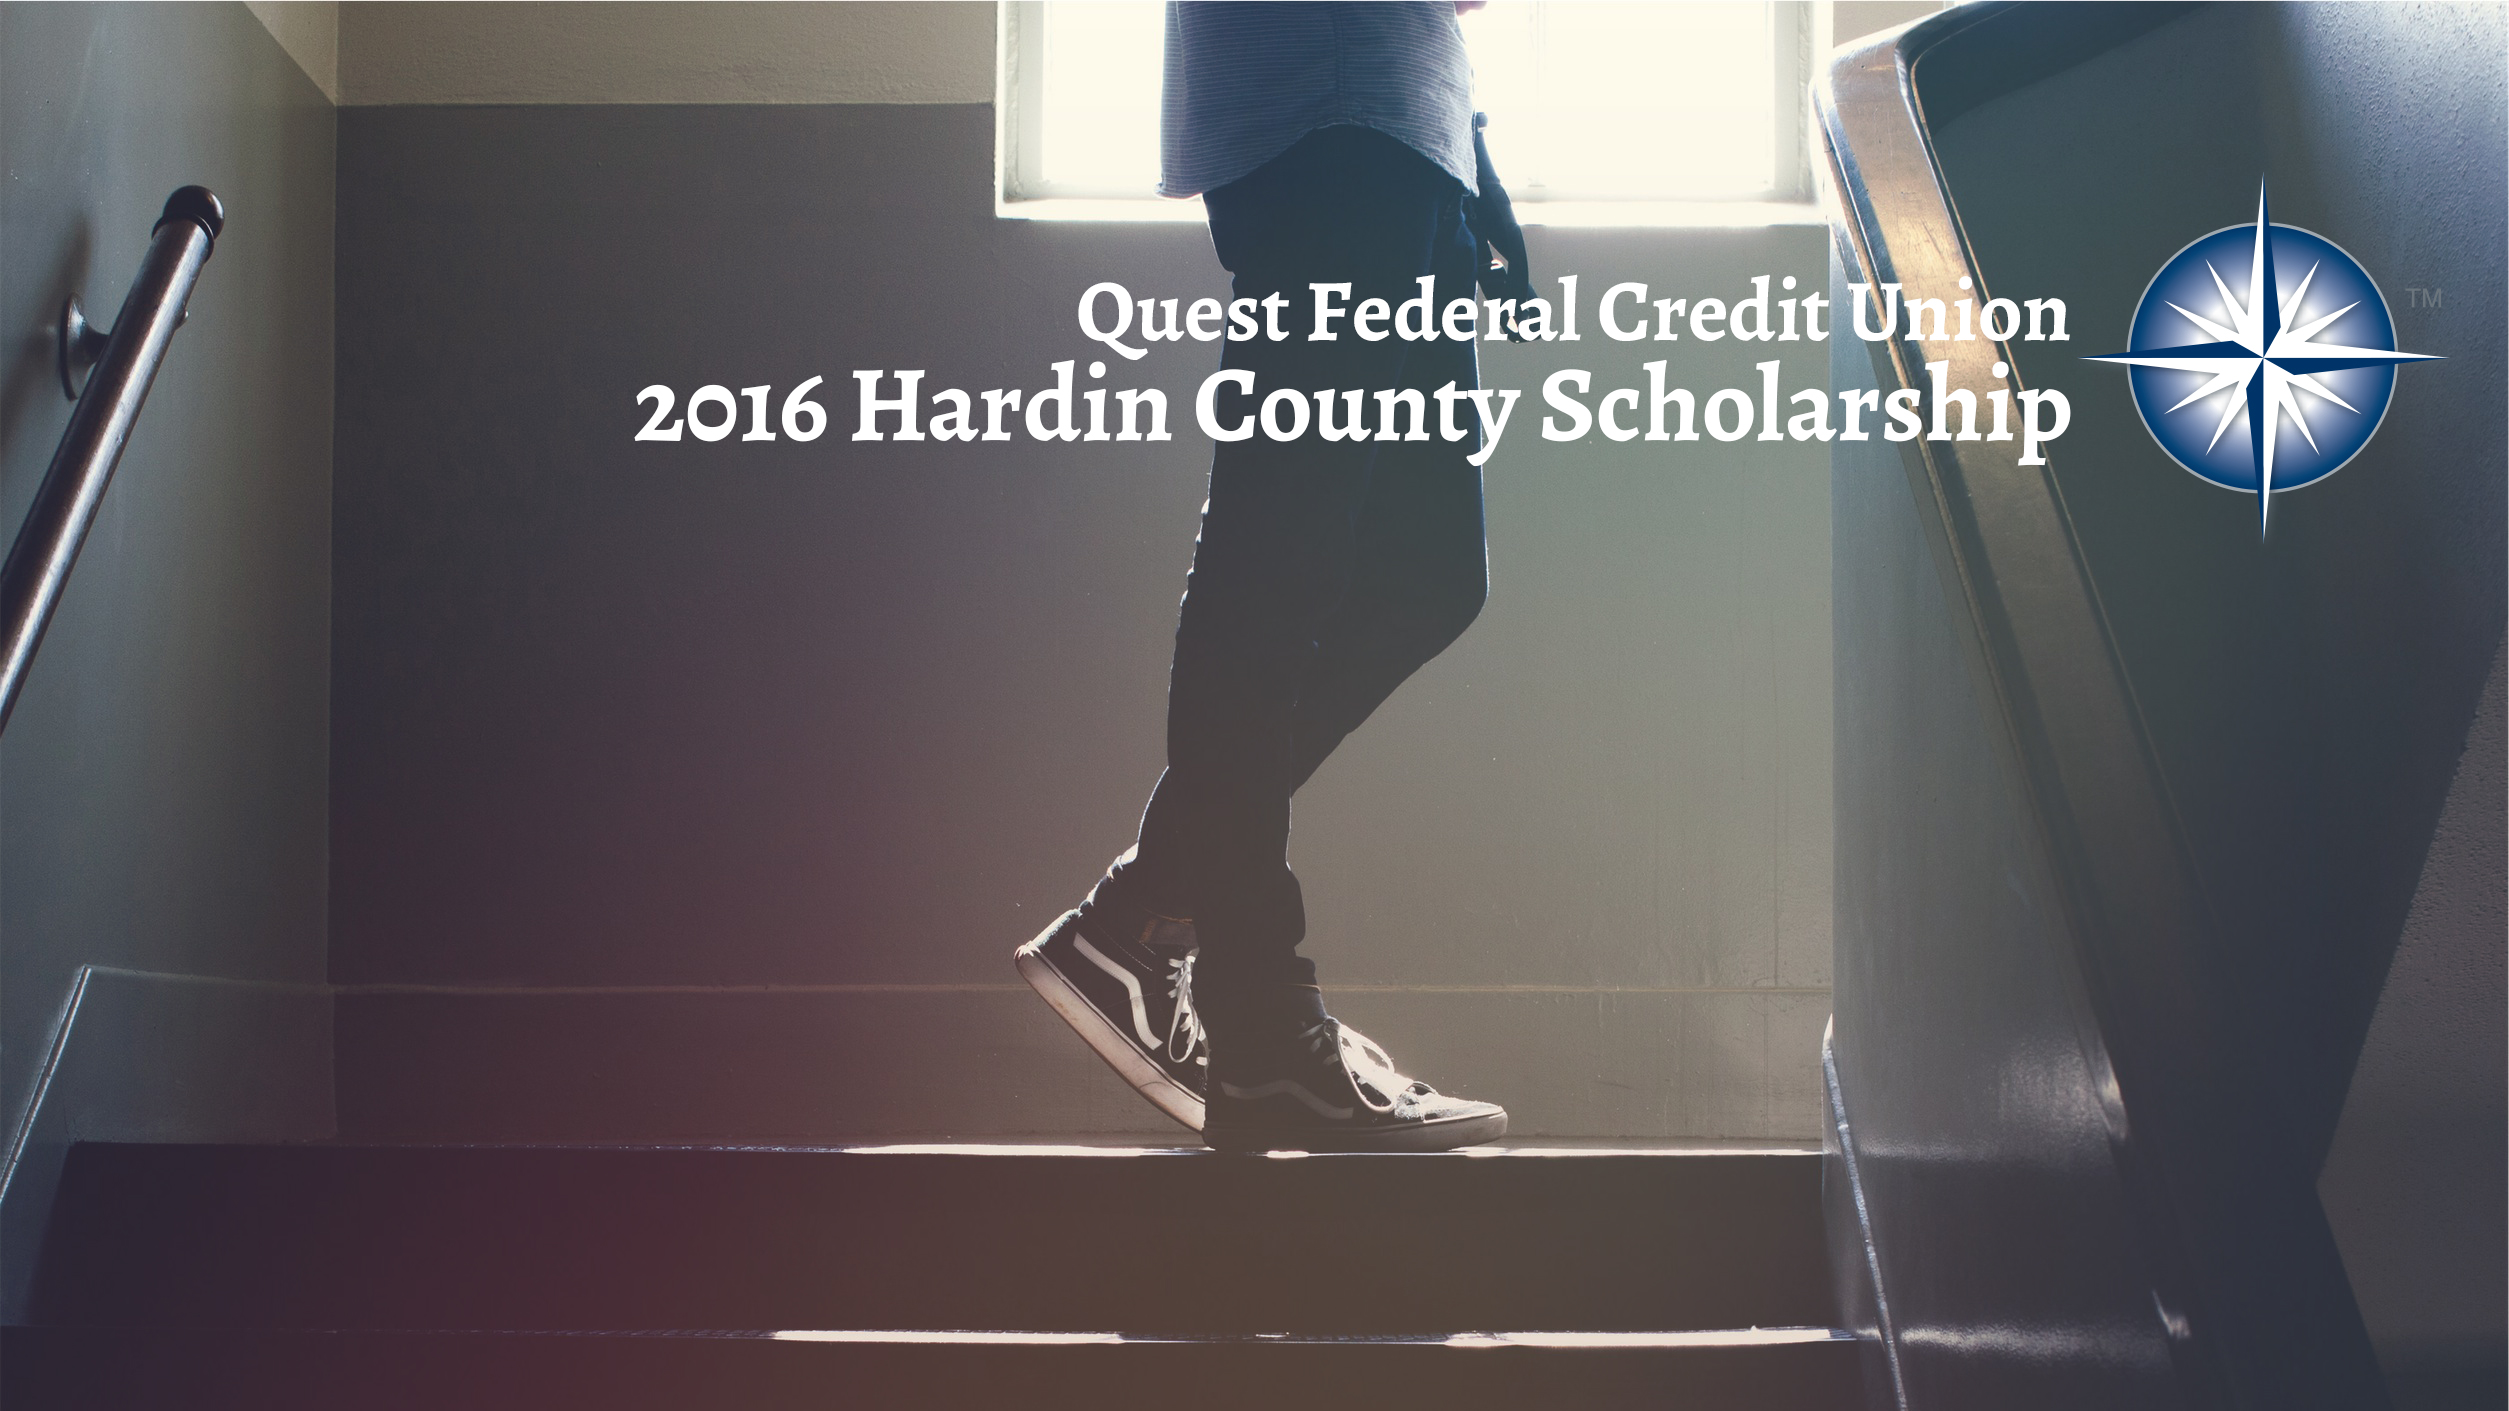 Hardin County Scholarships